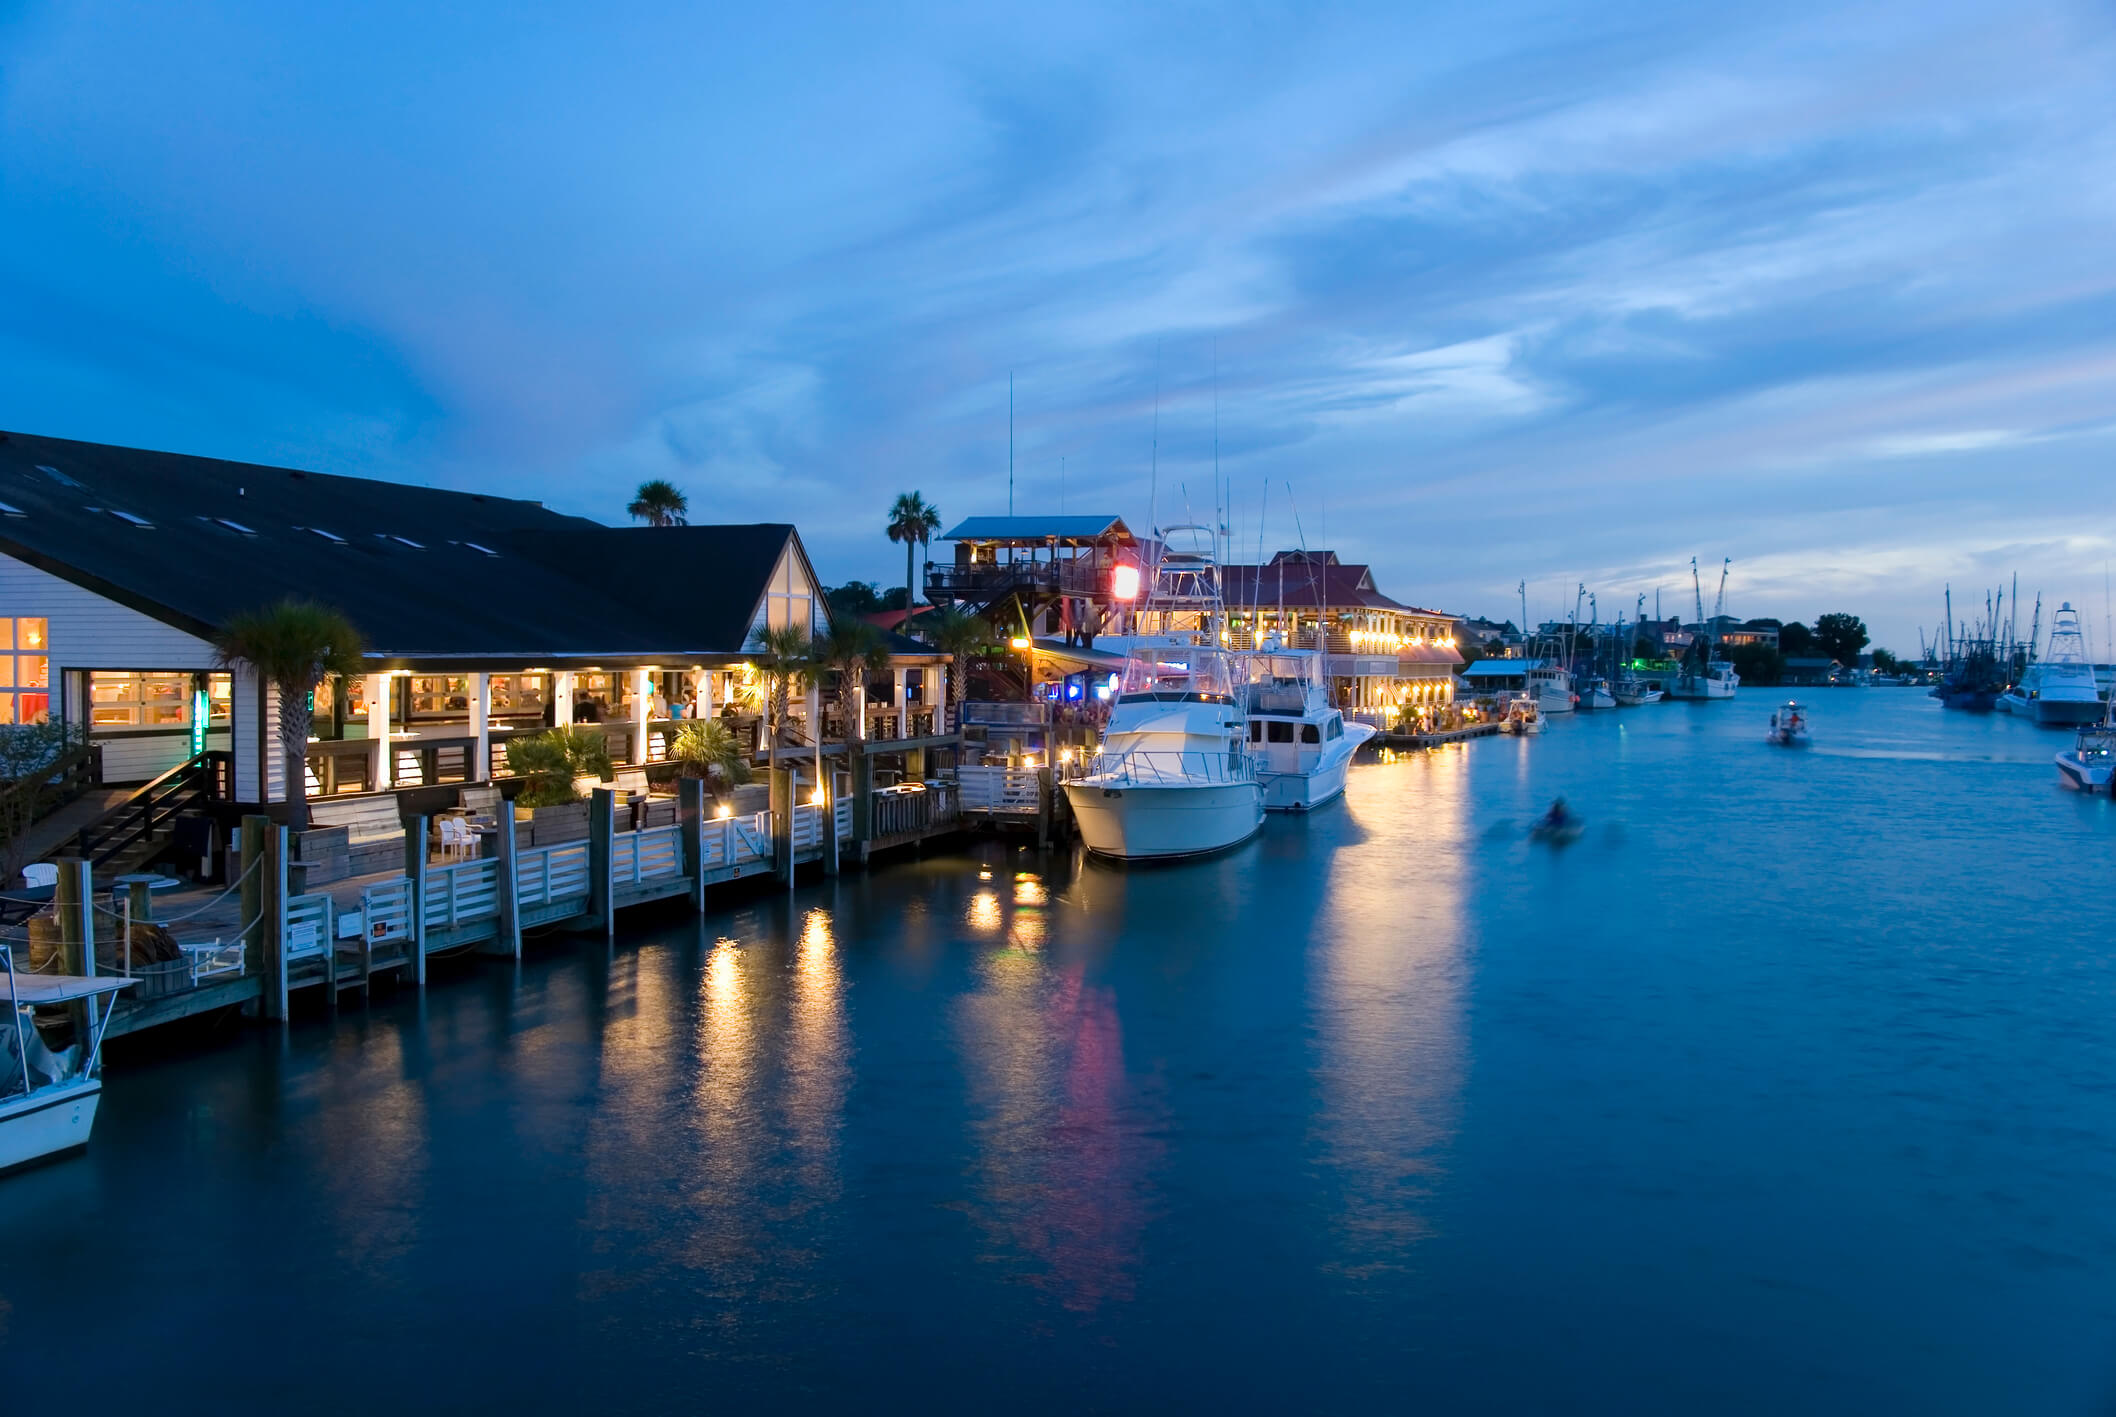 This is a photo of one of our locations in Mount Pleasant South Carolina, which is a dock with multiple boats sitting